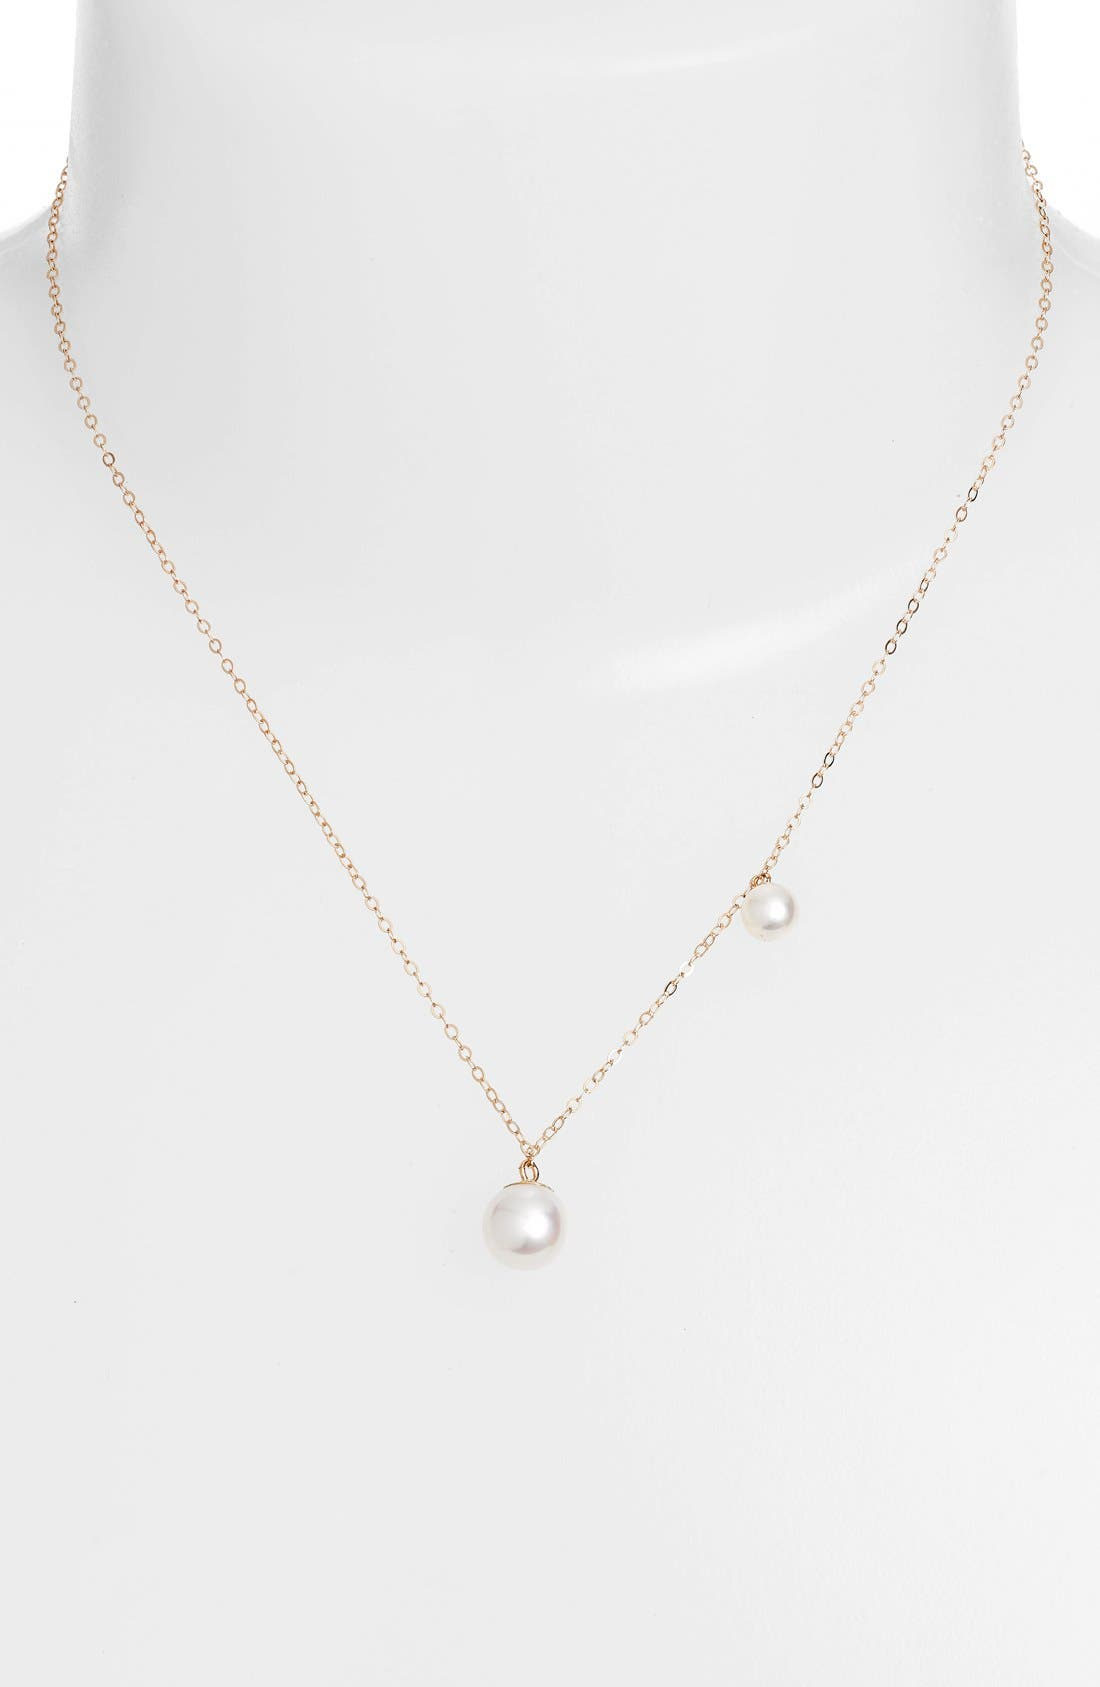 Double Pearl Pendant Necklace,                             Alternate thumbnail 2, color,                             YELLOW GOLD/ PEARL